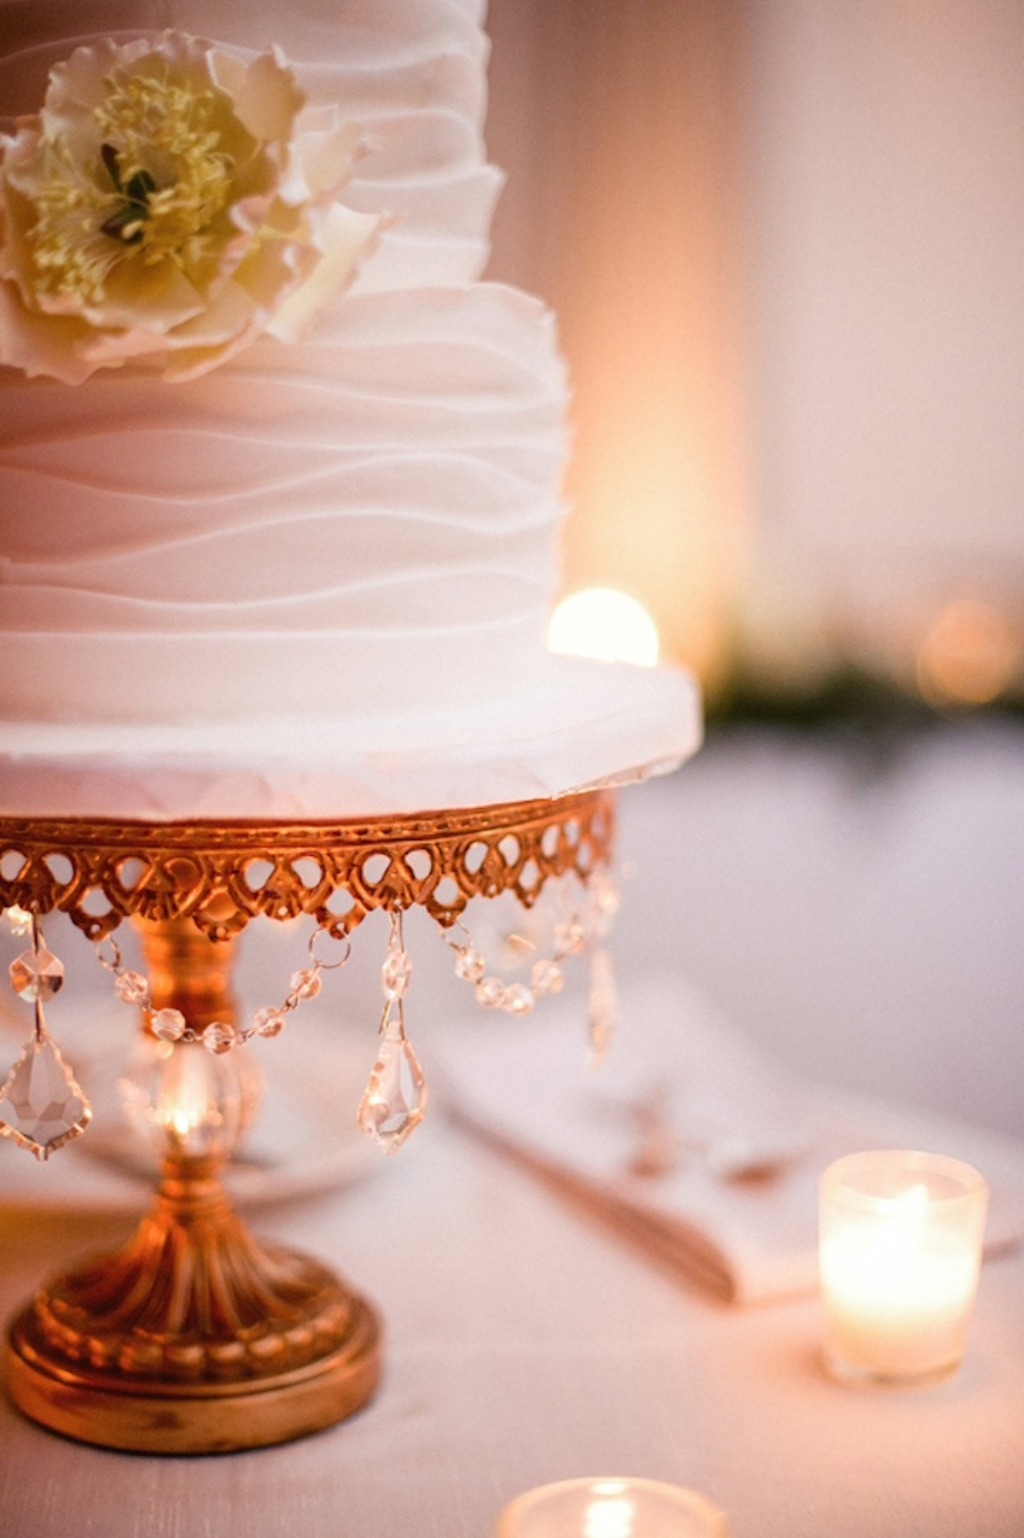 Opulent wedding cakes on Opulent Treasures cake stands. Discover our unique collection of entertaining and home decor pieces that will